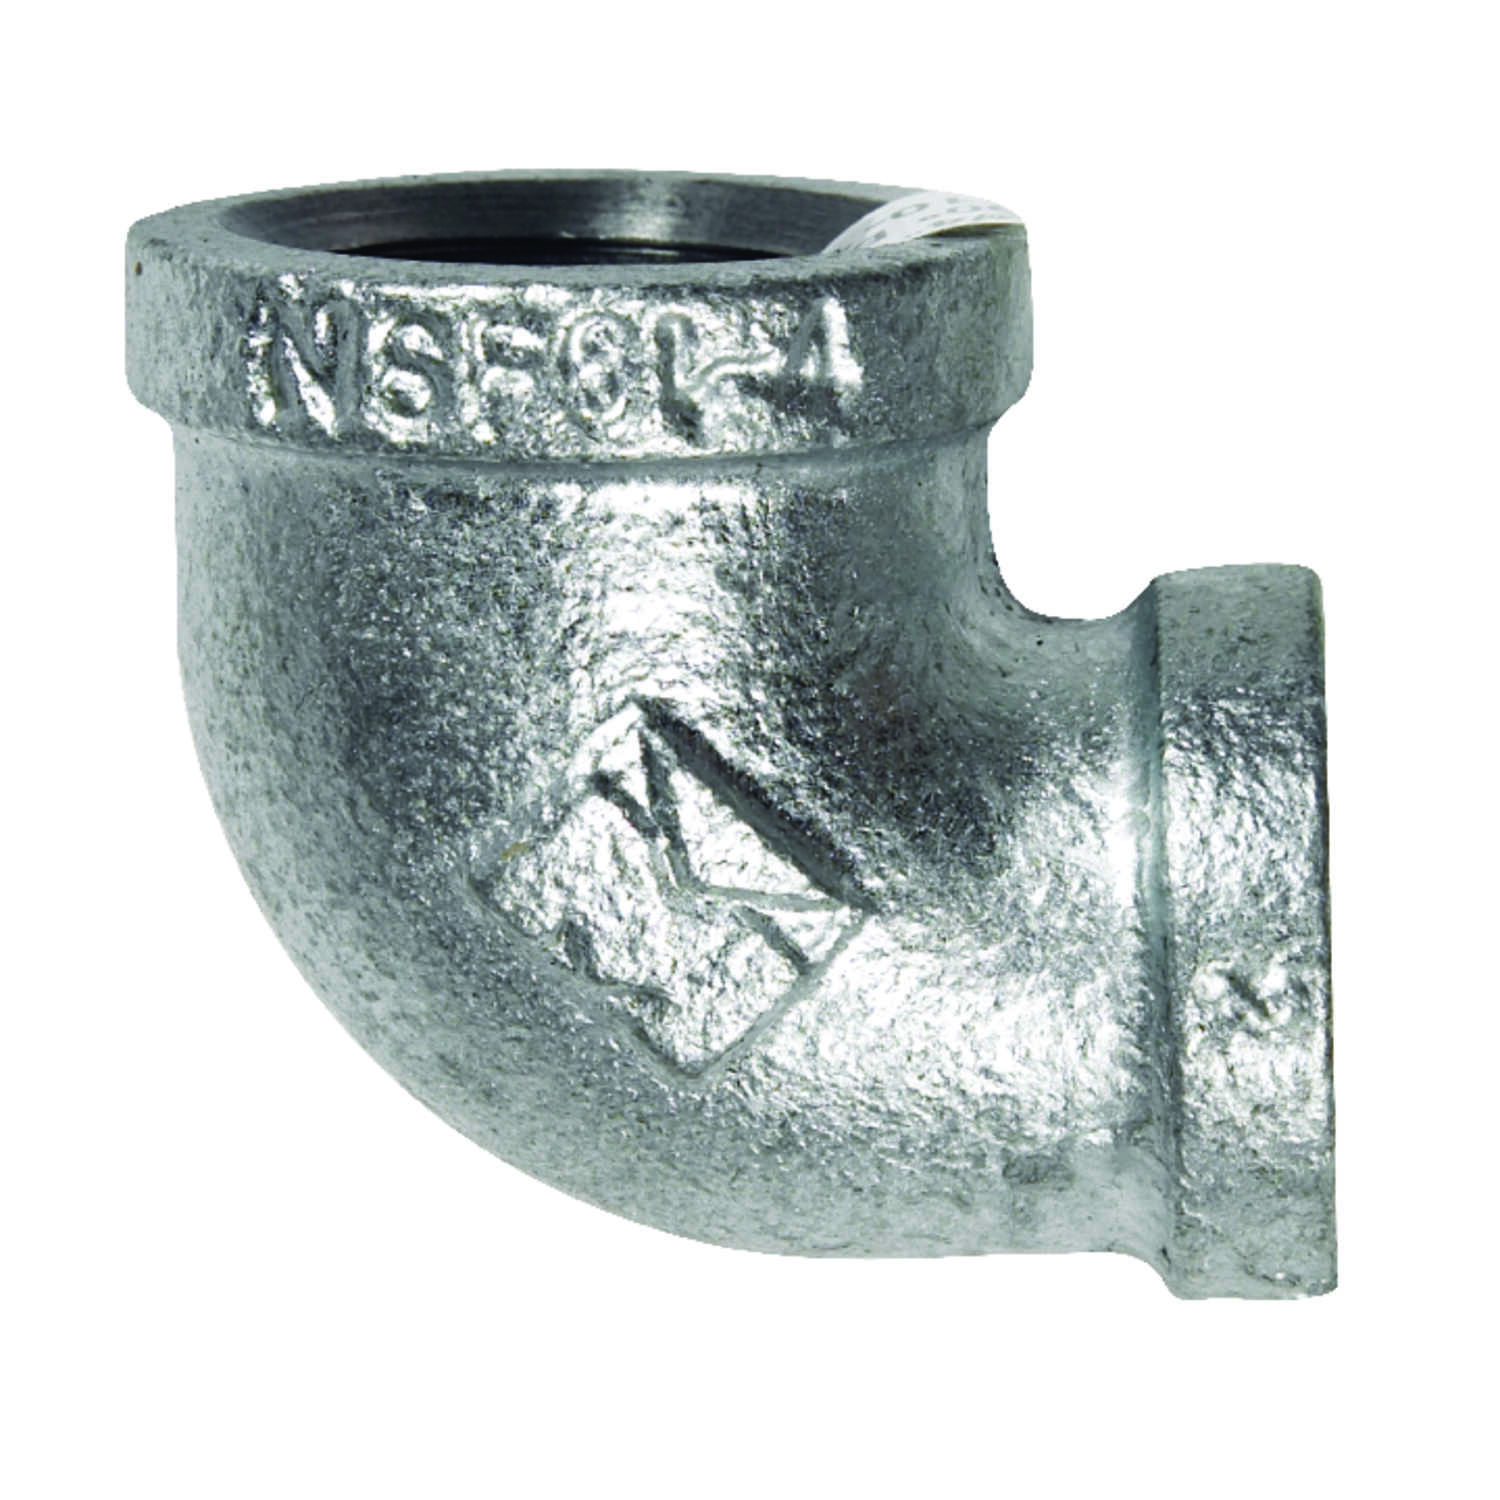 B & K  1 in. FPT   x 3/4 in. Dia. FPT  Galvanized  Malleable Iron  Reducing Elbow